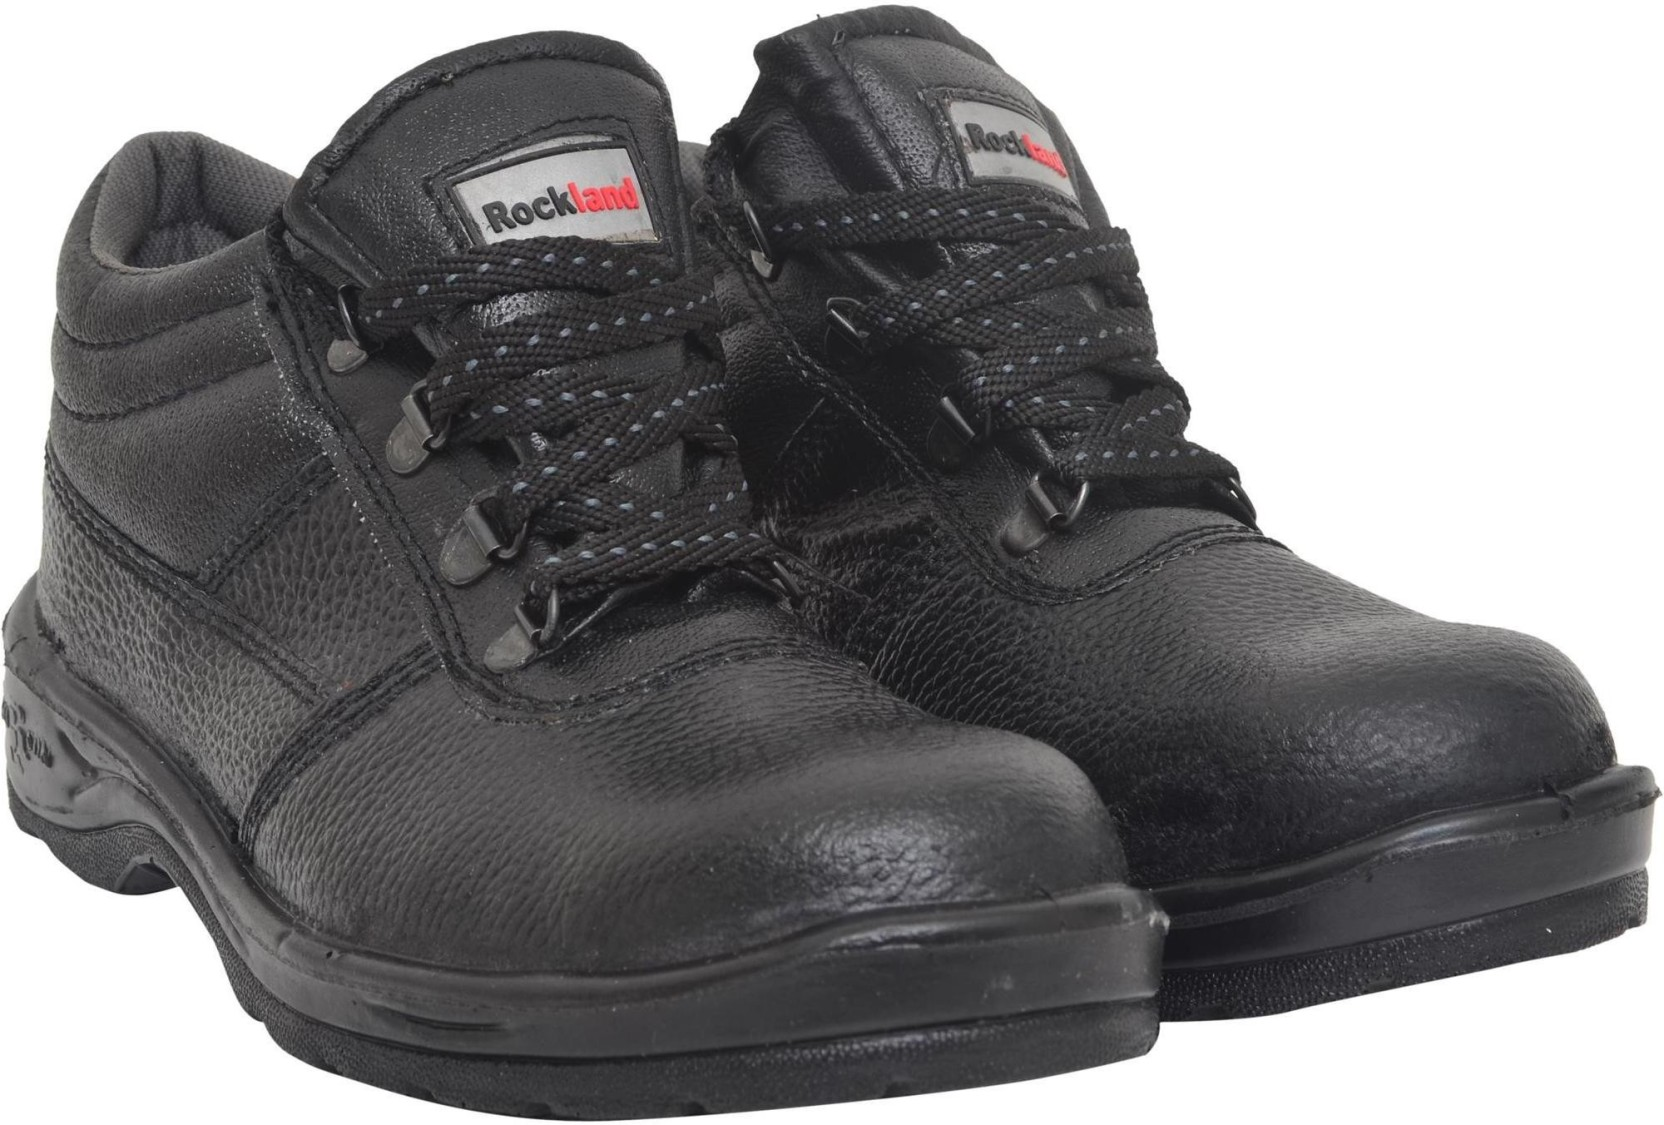 Hillson Rockland Safety Shoe Casuals - Buy Black Color Hillson Rockland Safety Shoe Casuals ...